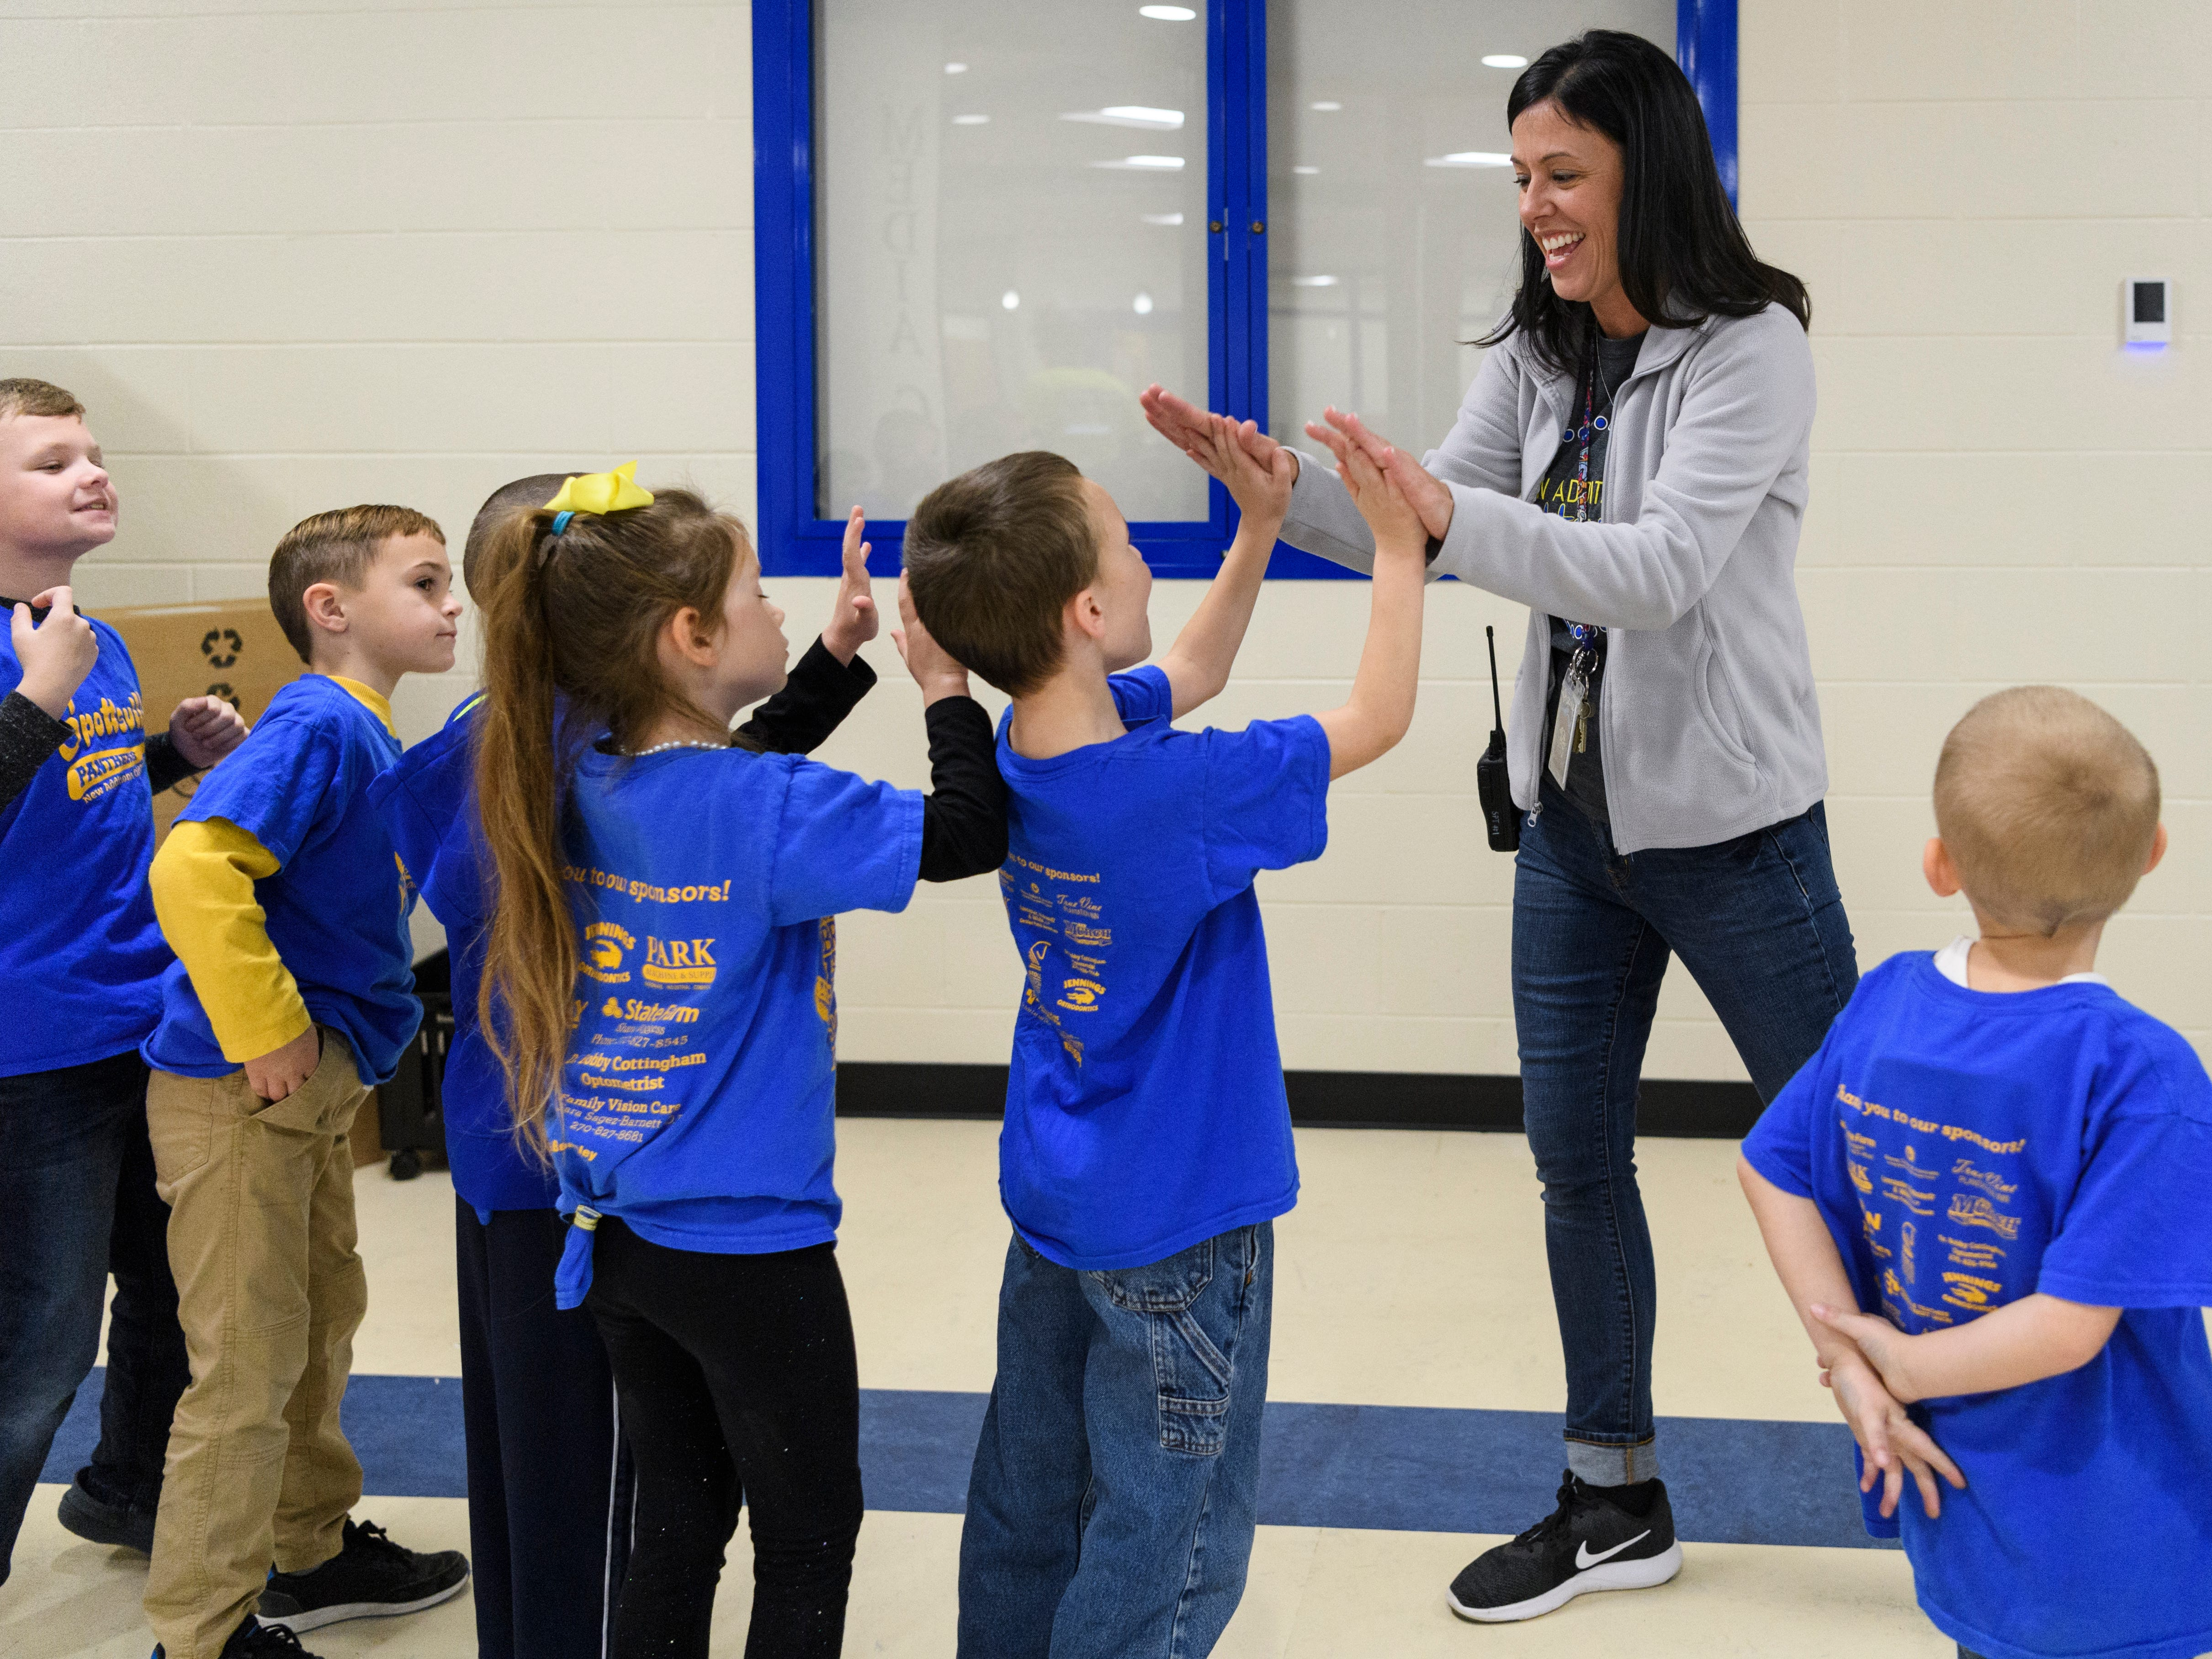 Principal Sarah Estabrook gives out high-fives and asks students if they are excited to move into the new Spottsville Elementary school building during a student transition tour of the new Henderson County public school facility, Friday morning, Nov. 9, 2018. All the students got to bring a few items over to their new classrooms and tour the building in preparation for their official move-in day, Monday, November 12.